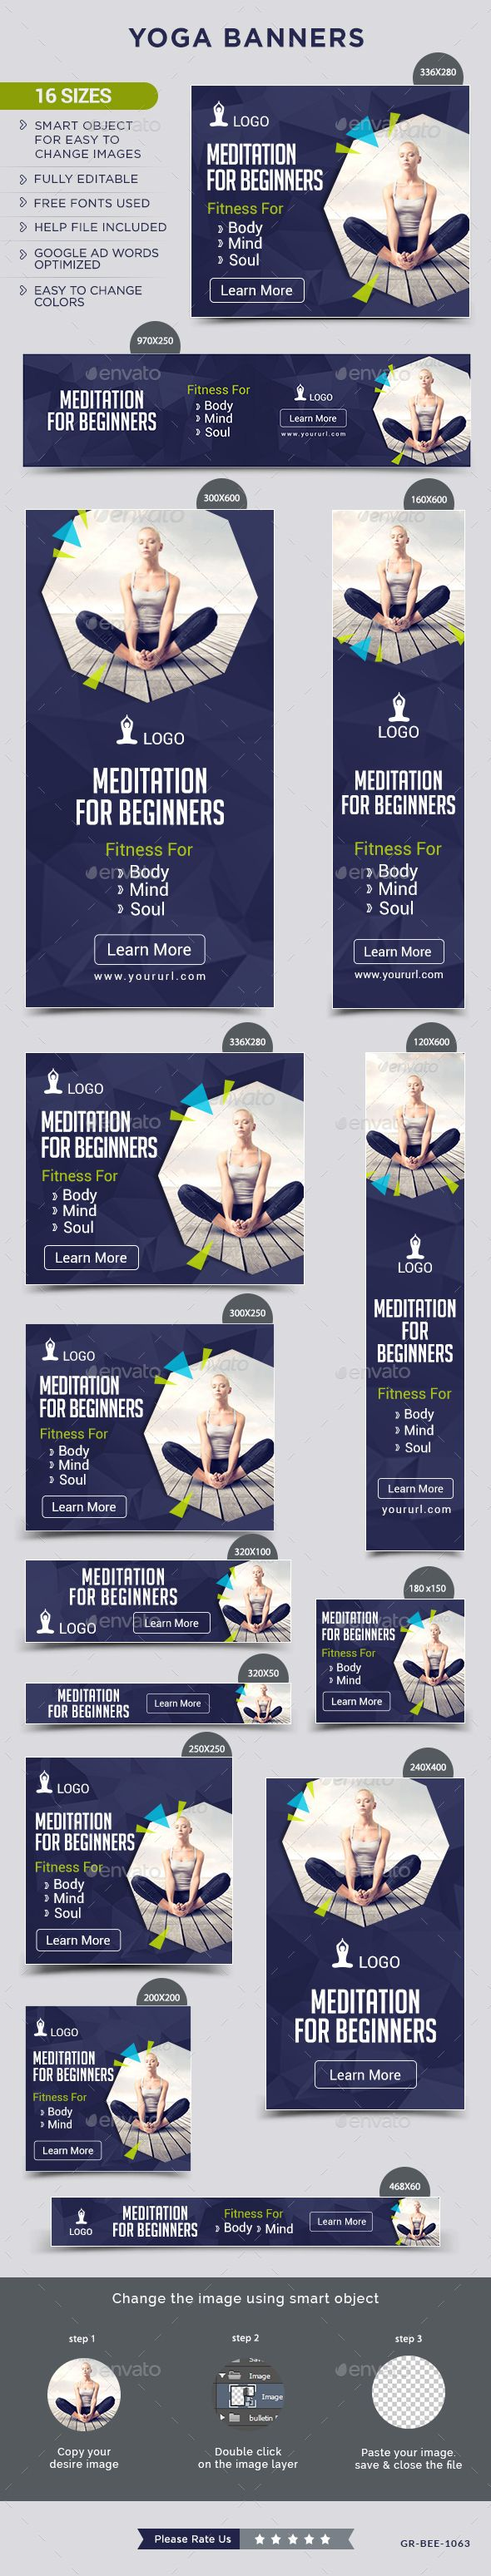 Design google banner ads - Yoga Banners